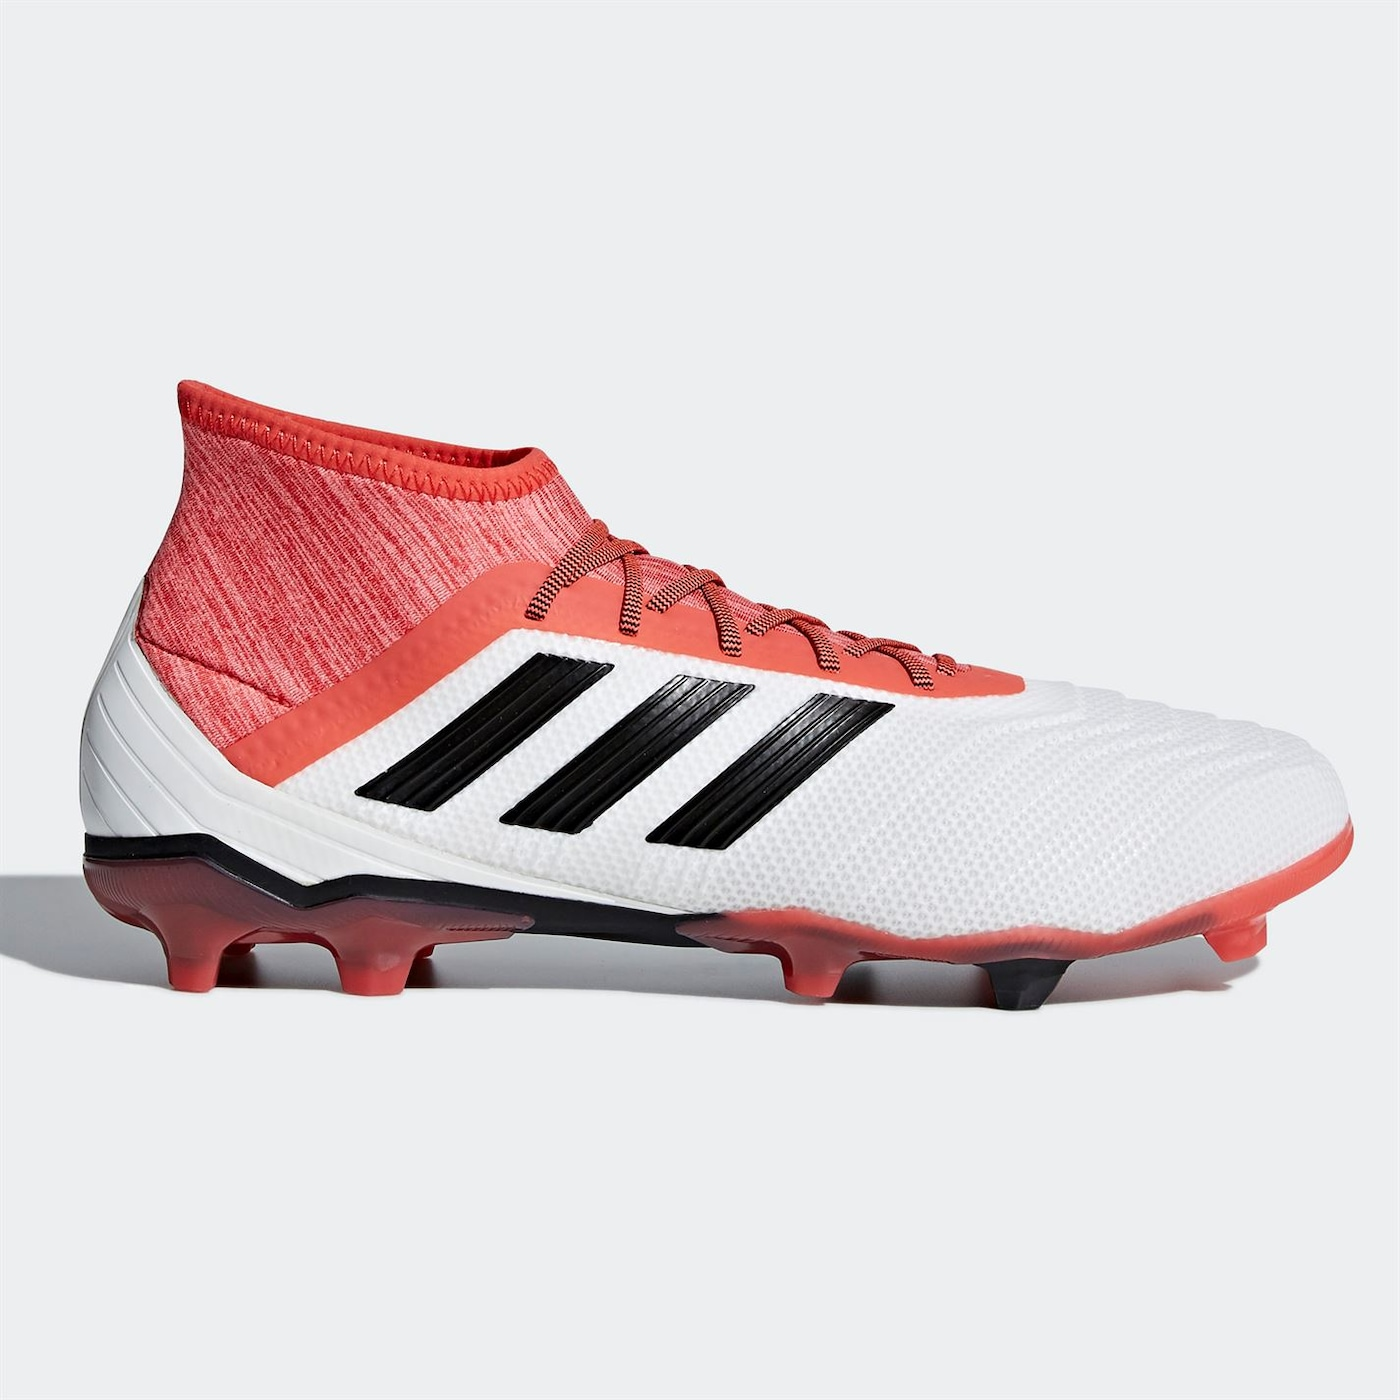 adidas Predator 18.2 Mens FG Football Boots